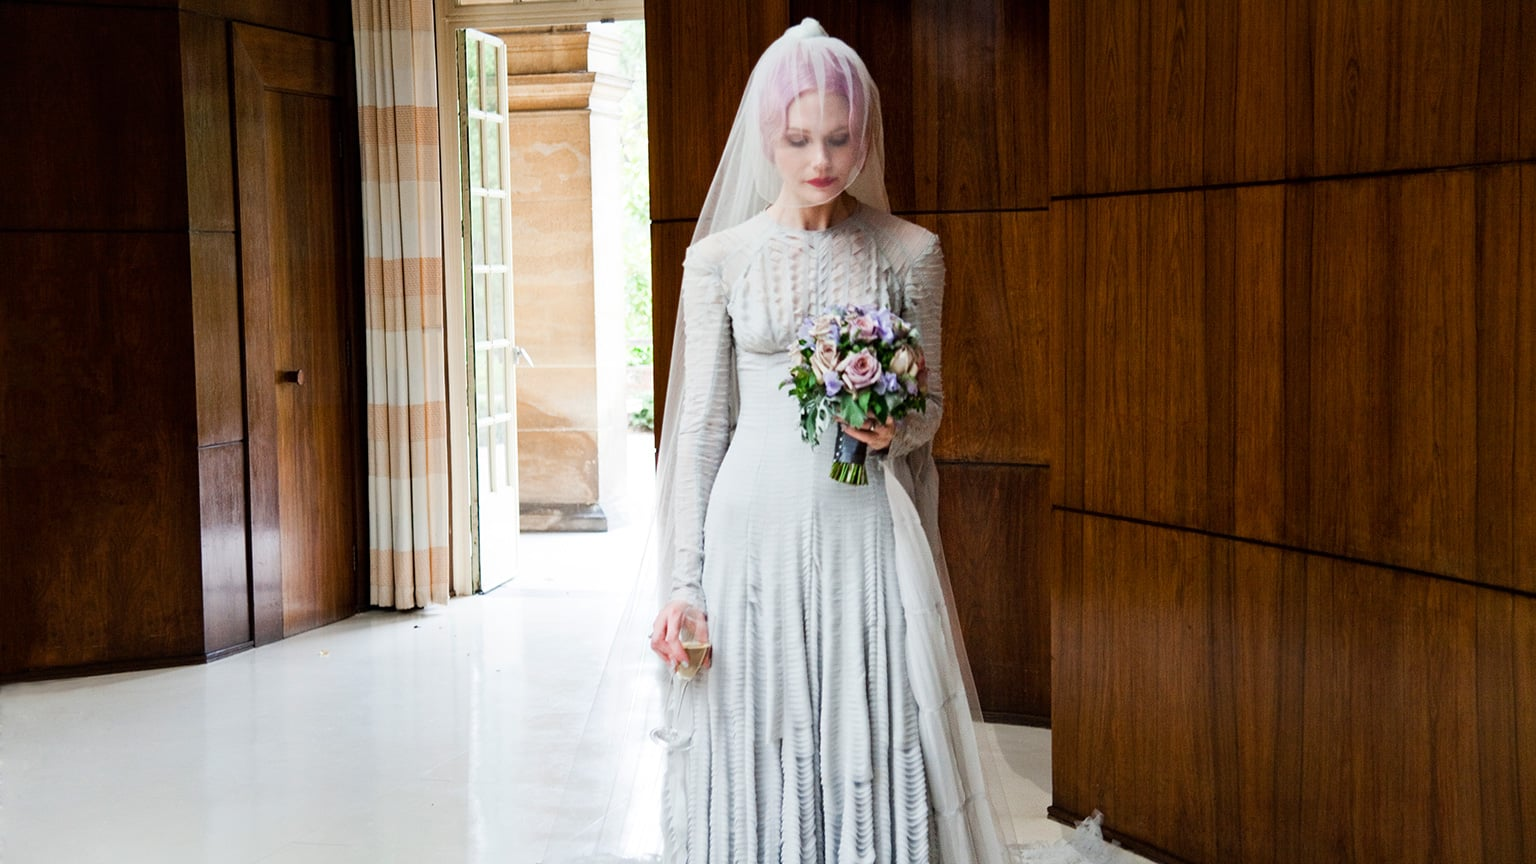 Pale grey slashed chiffon wedding dress and veil designed by Gareth Pugh. Worn by Katie Shillingford for her marriage to Alex Dromgoole, 2011